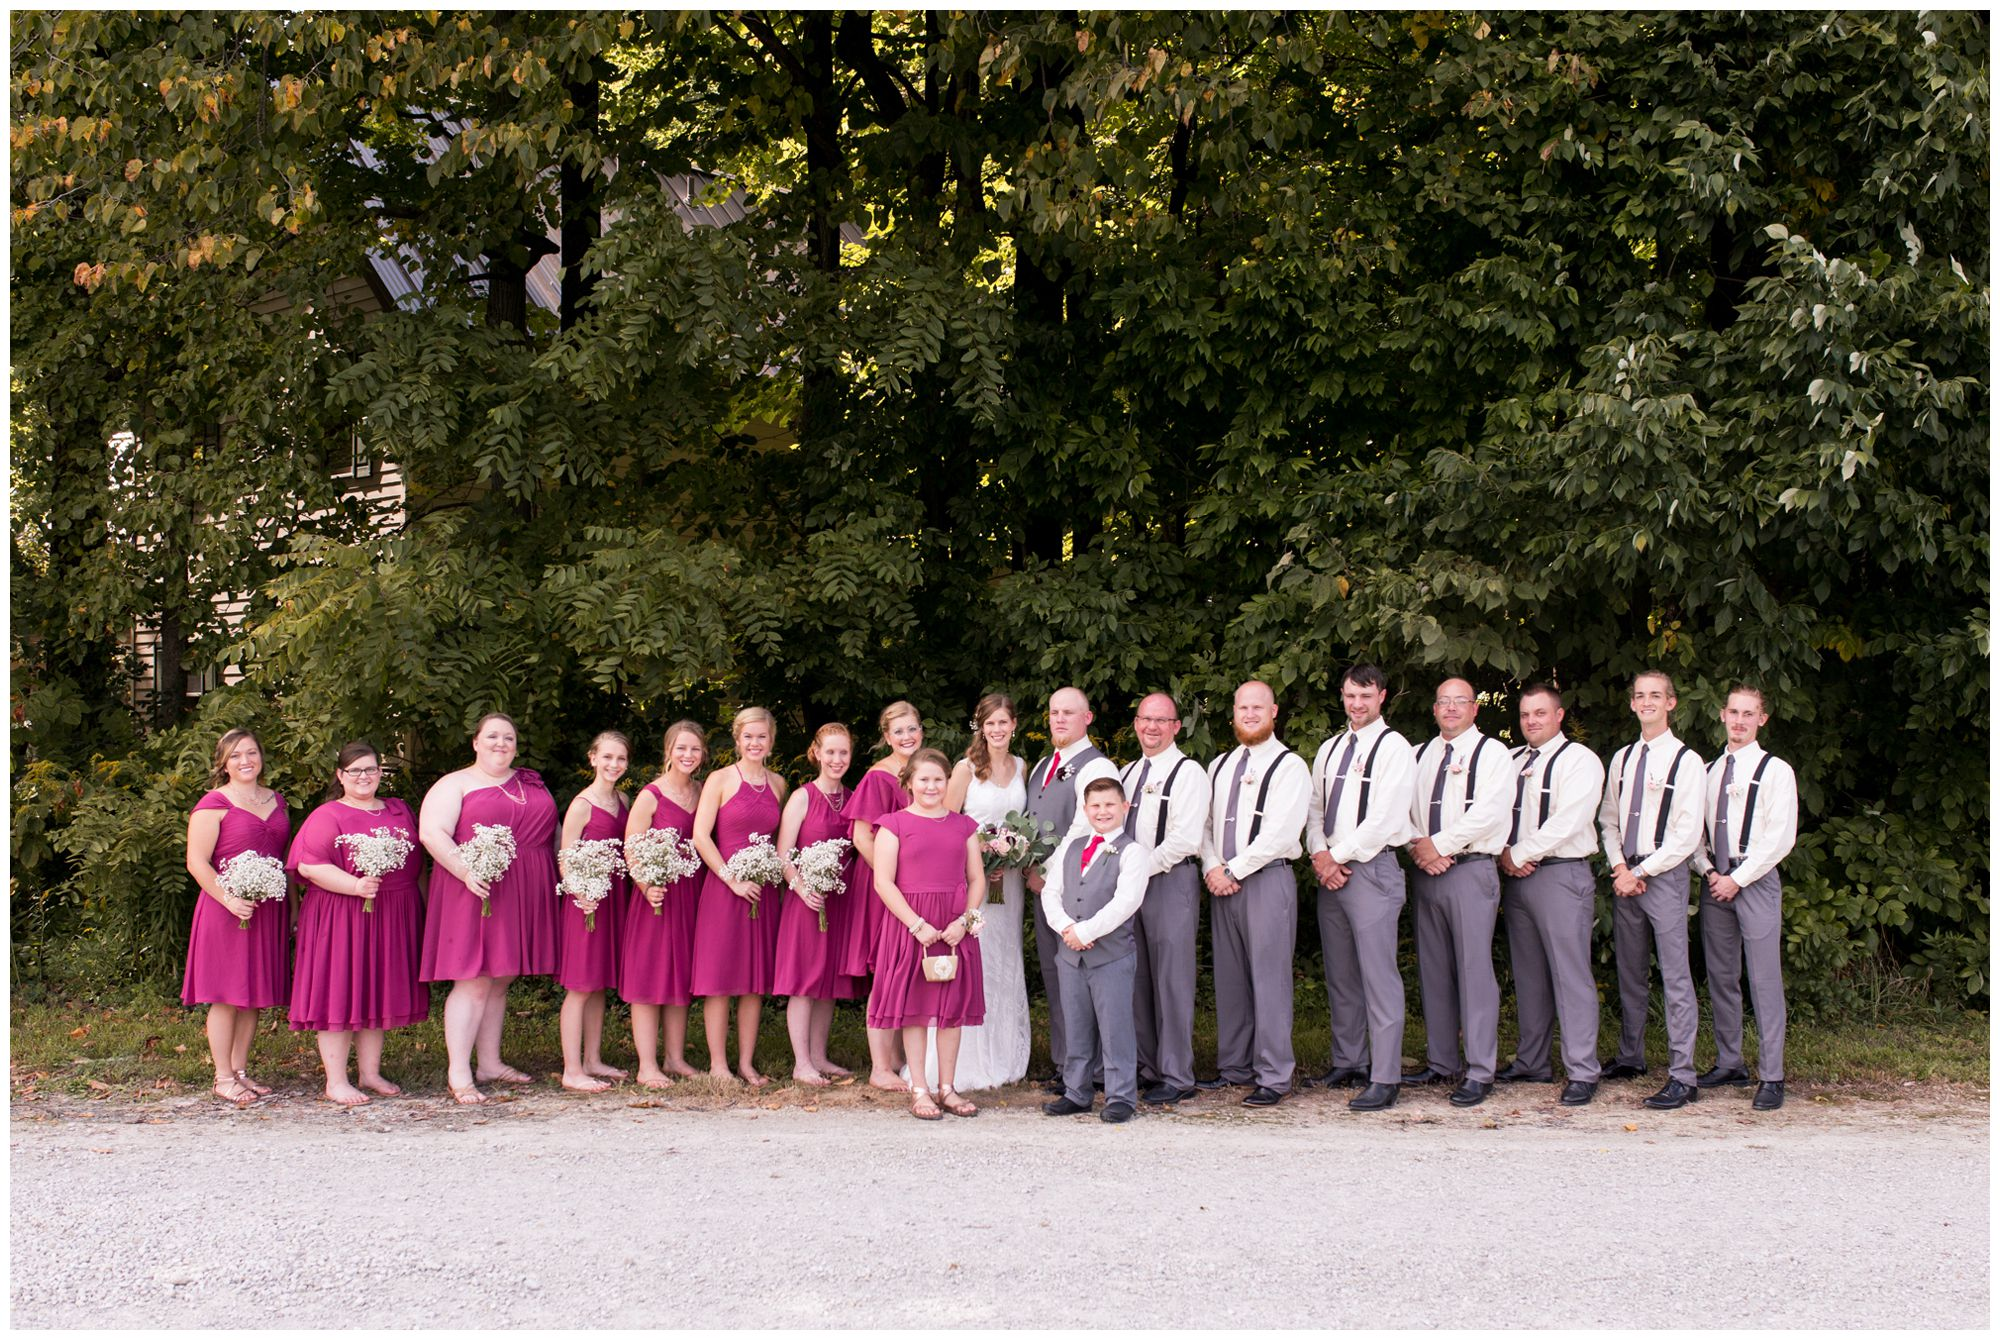 bride Tabea and groom Daniel with bridesmaids to left and groomsmen to left and flower girl and ring bearer in center of photo